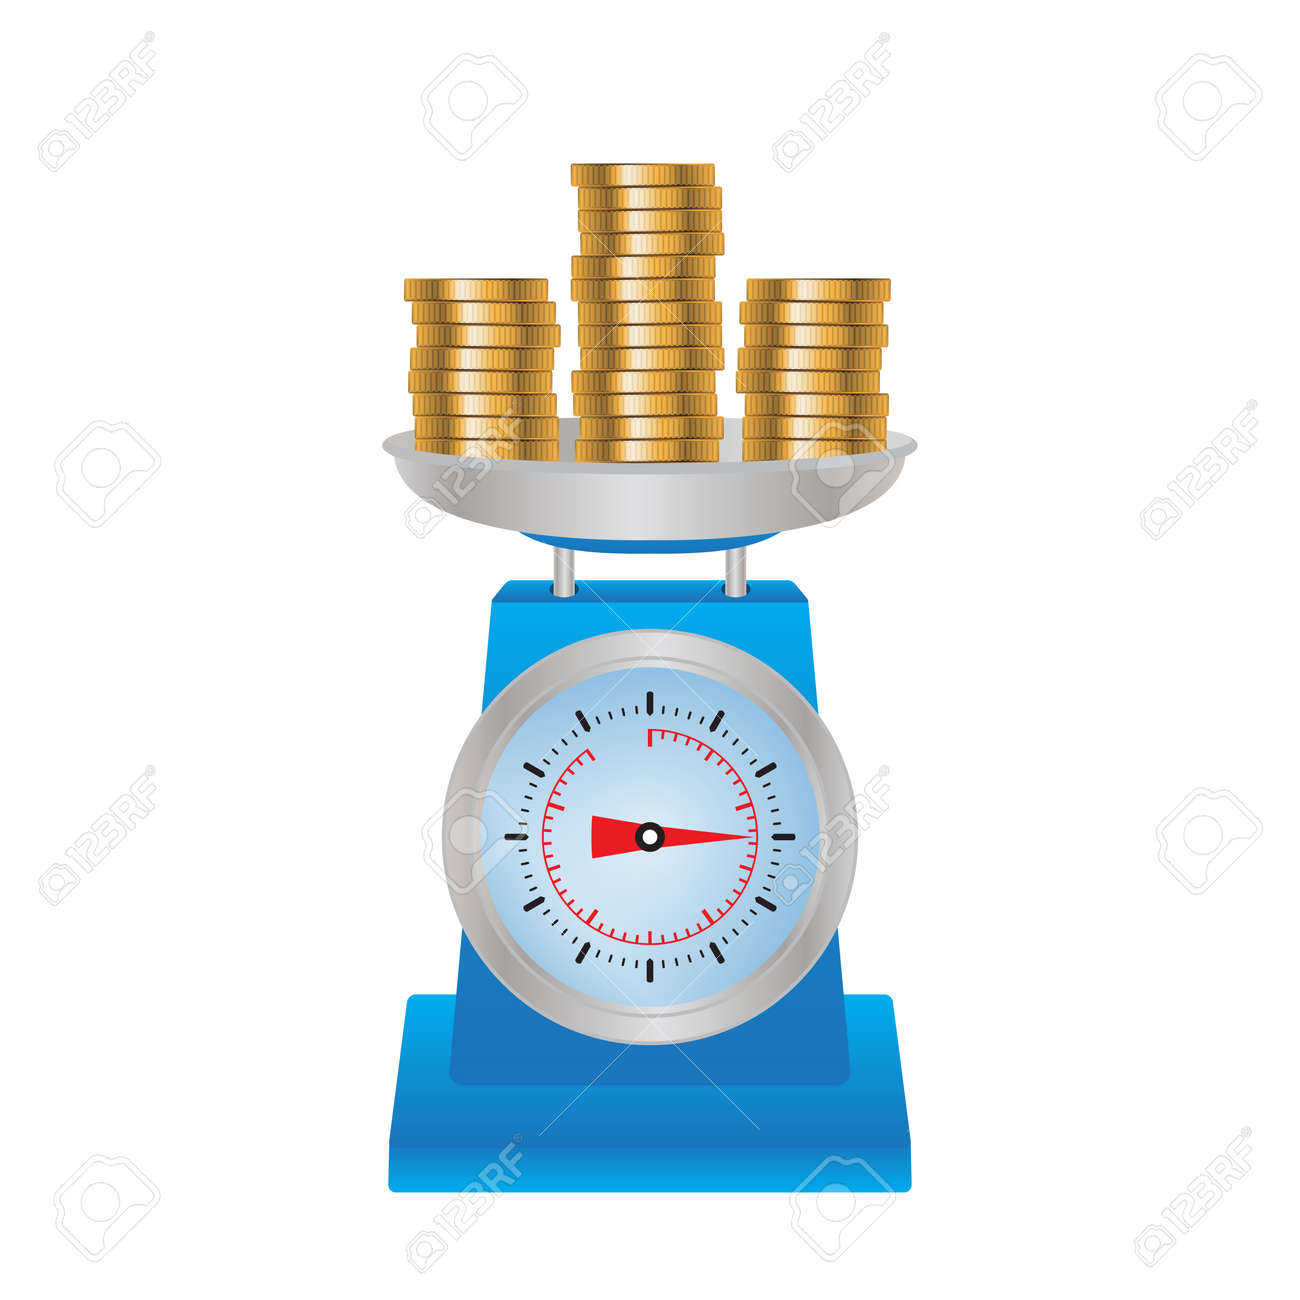 Coins on the scales. Illustration, elements for design. - 52500375